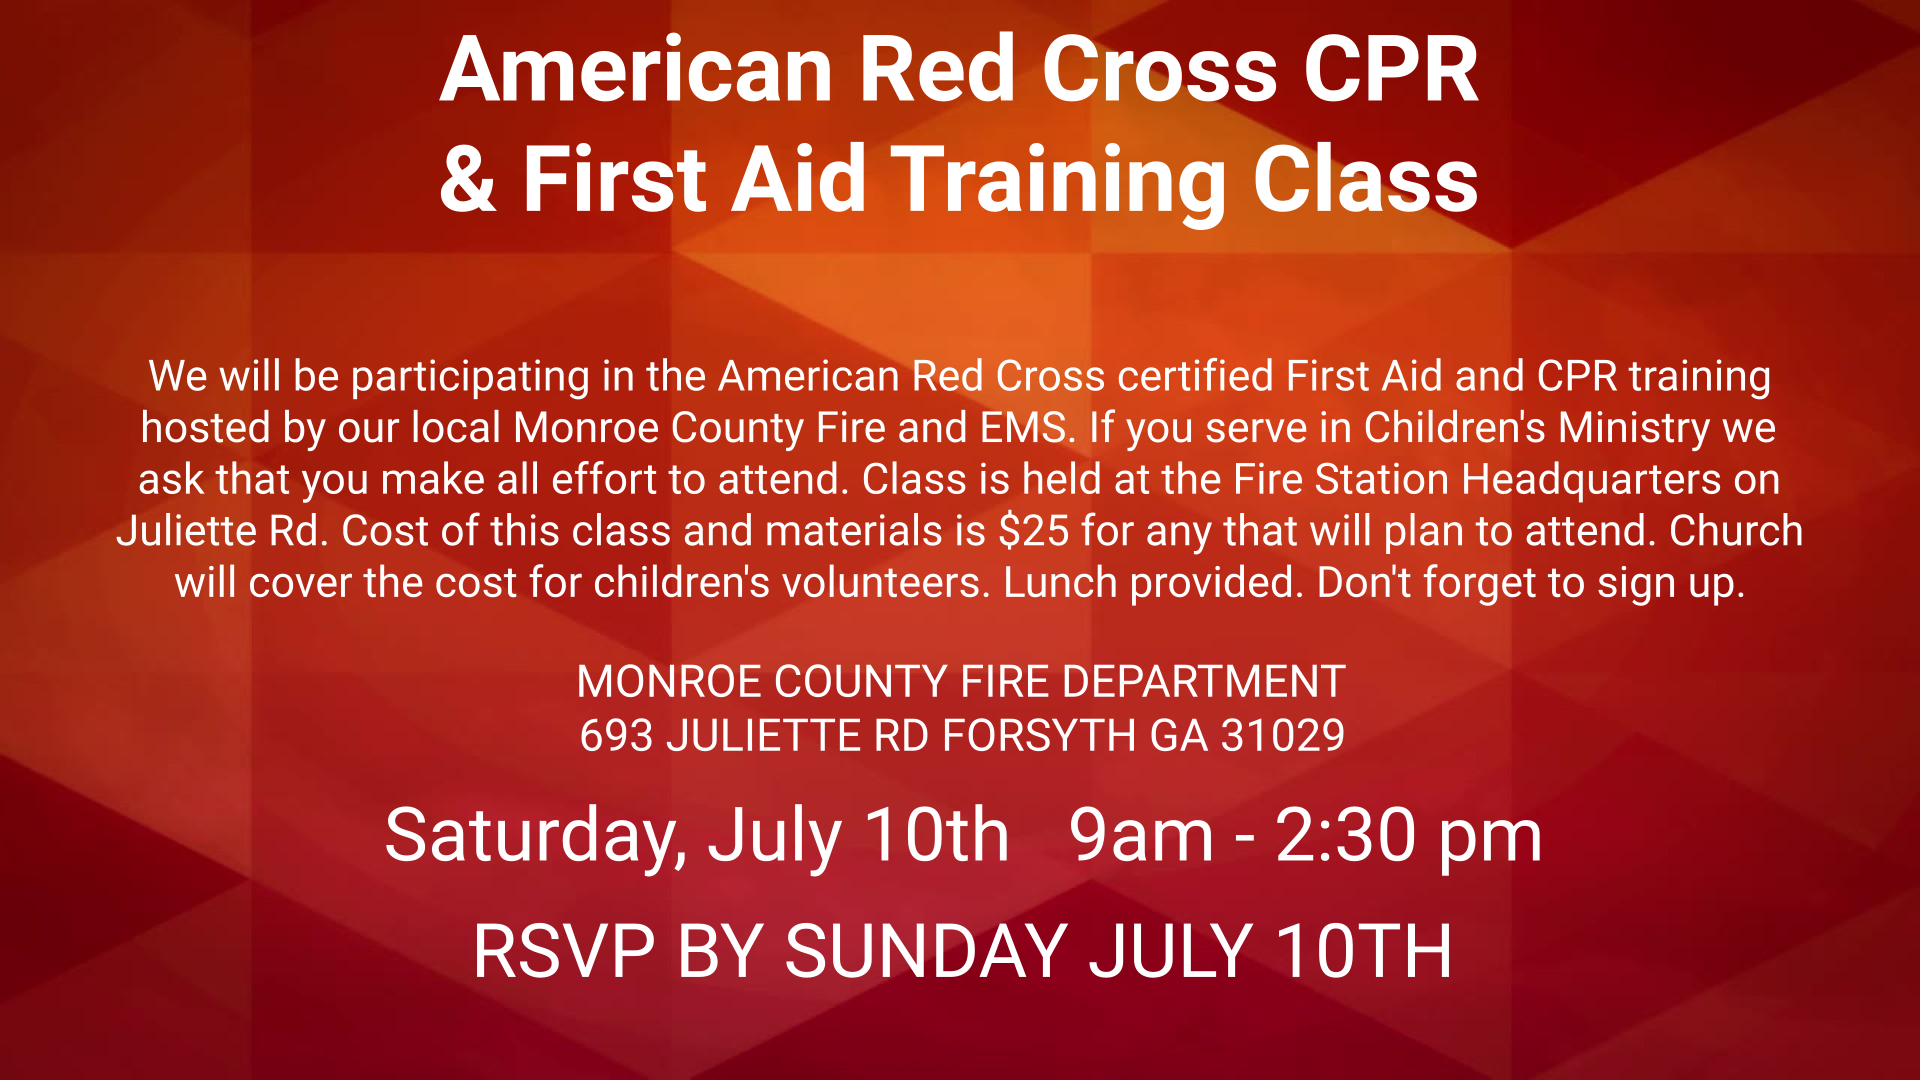 American Red Cross CPR and First Aid Training